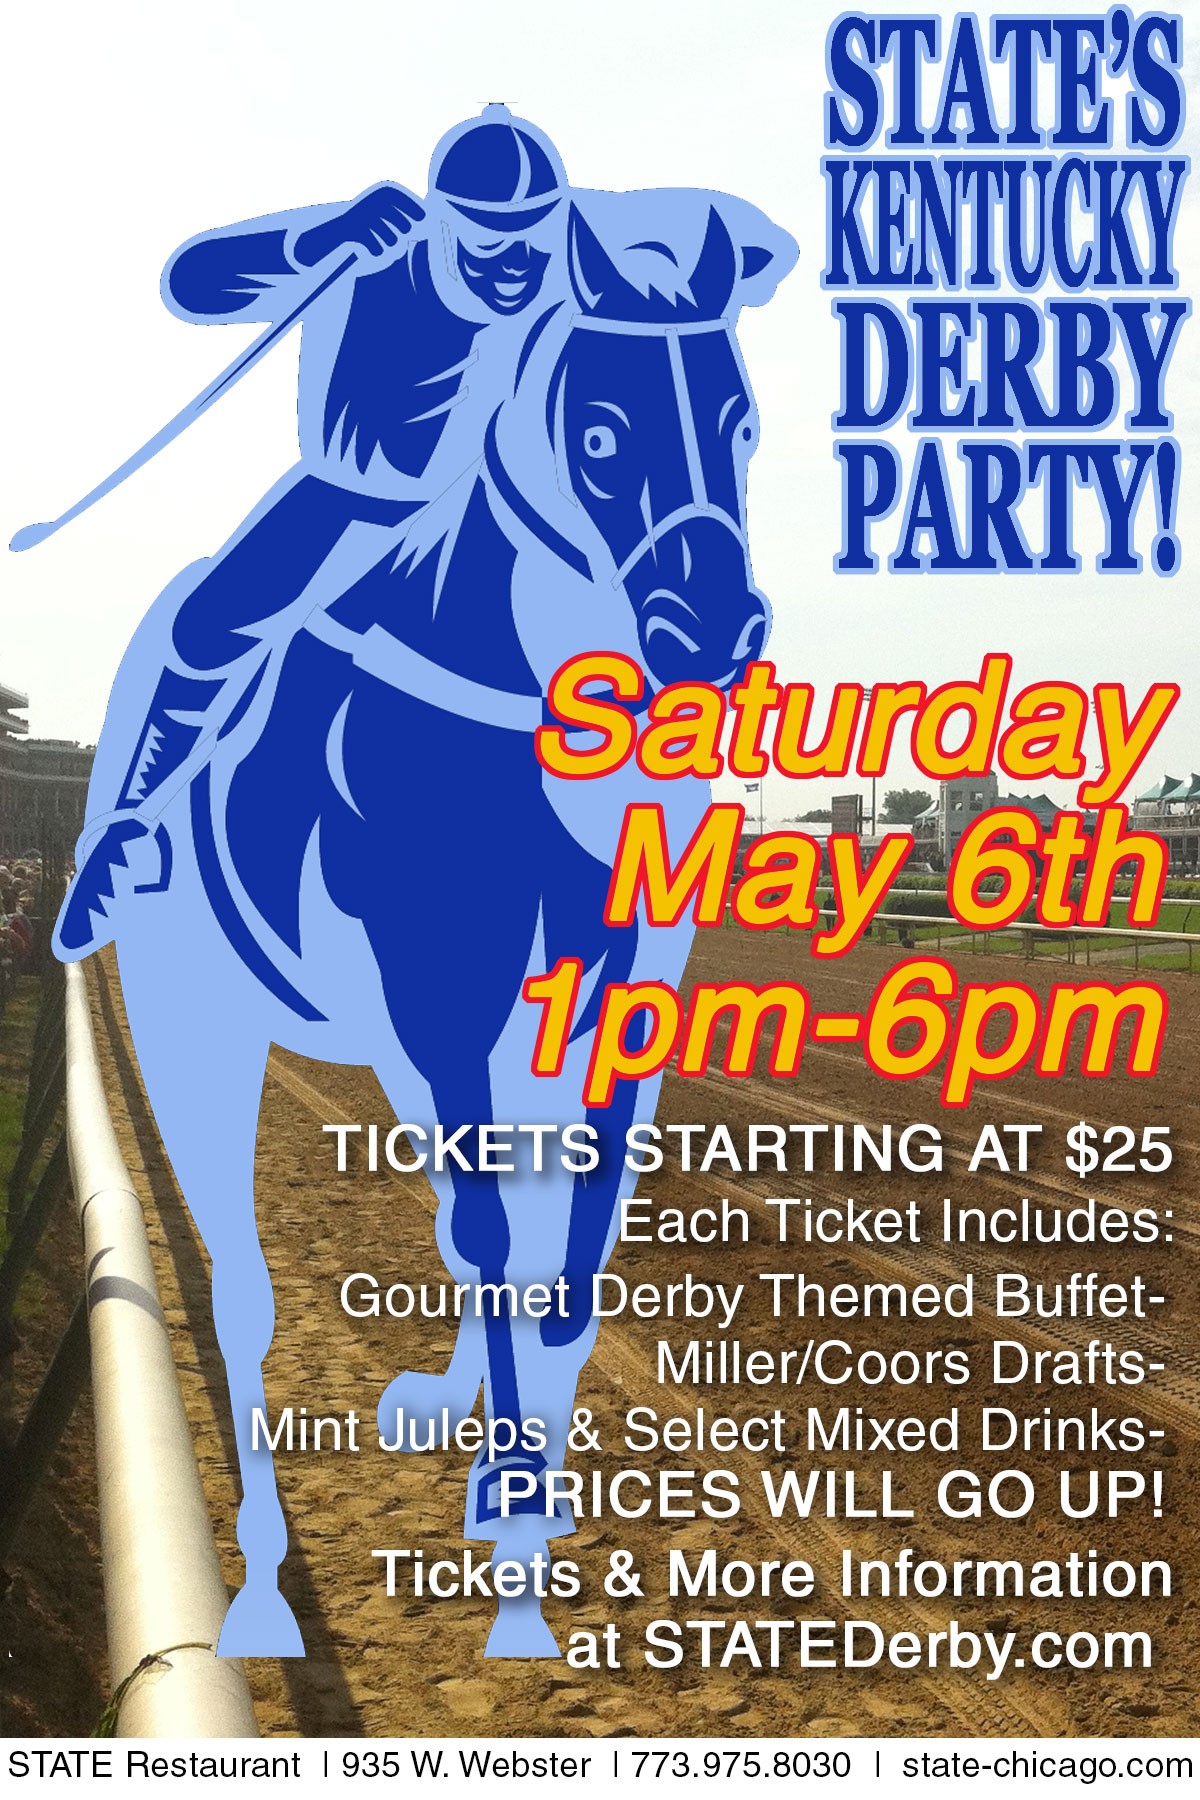 State Restaurant - Kentucky Derby Party - Tickets include a Gourmet Derby Themed Buffet, Miller/Coors Drafts, Mit Juleps and Select Mixed Drinks!n